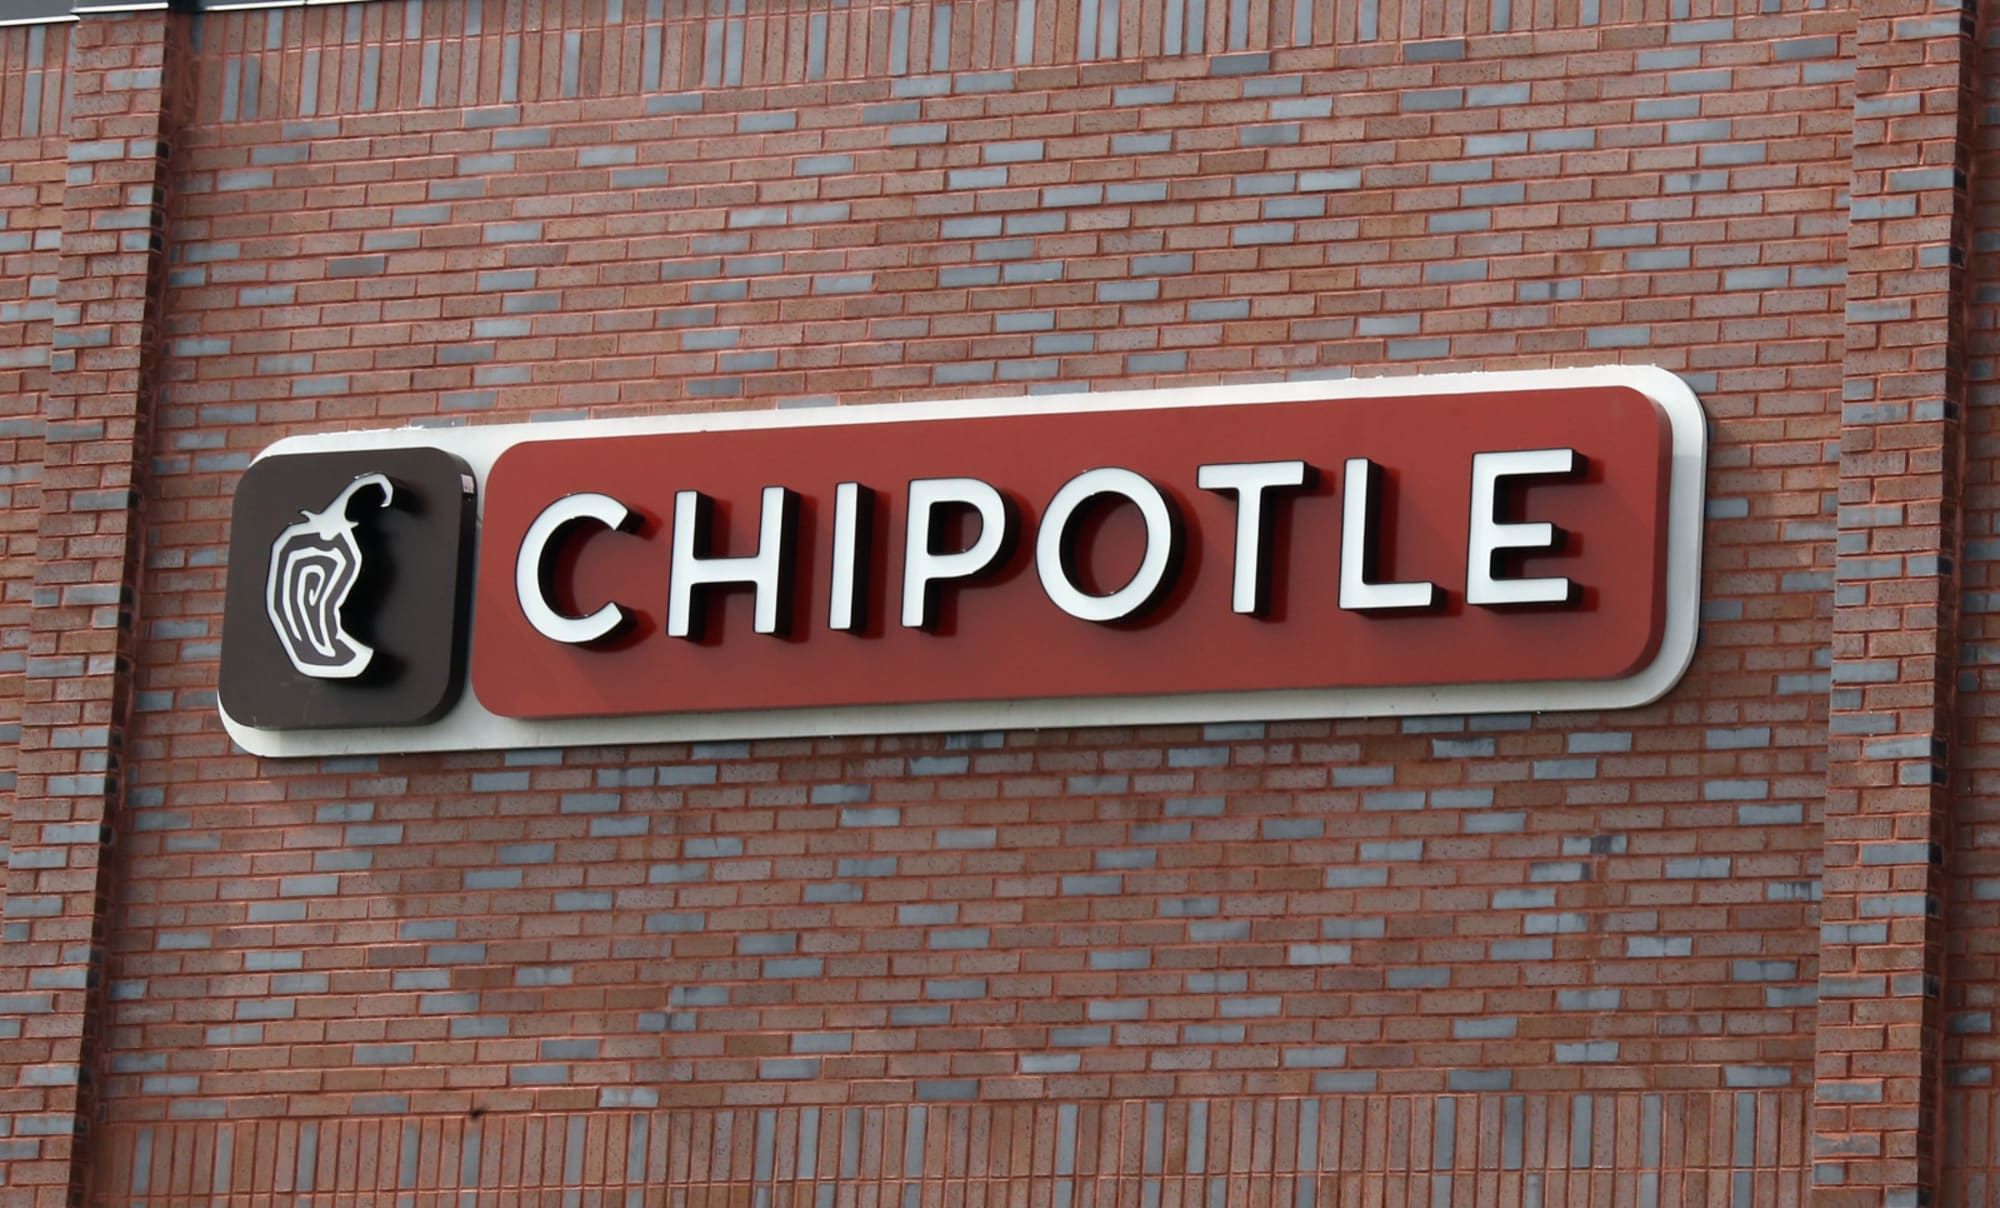 Chipotle Goods, wearing your love of guac on your sleeve